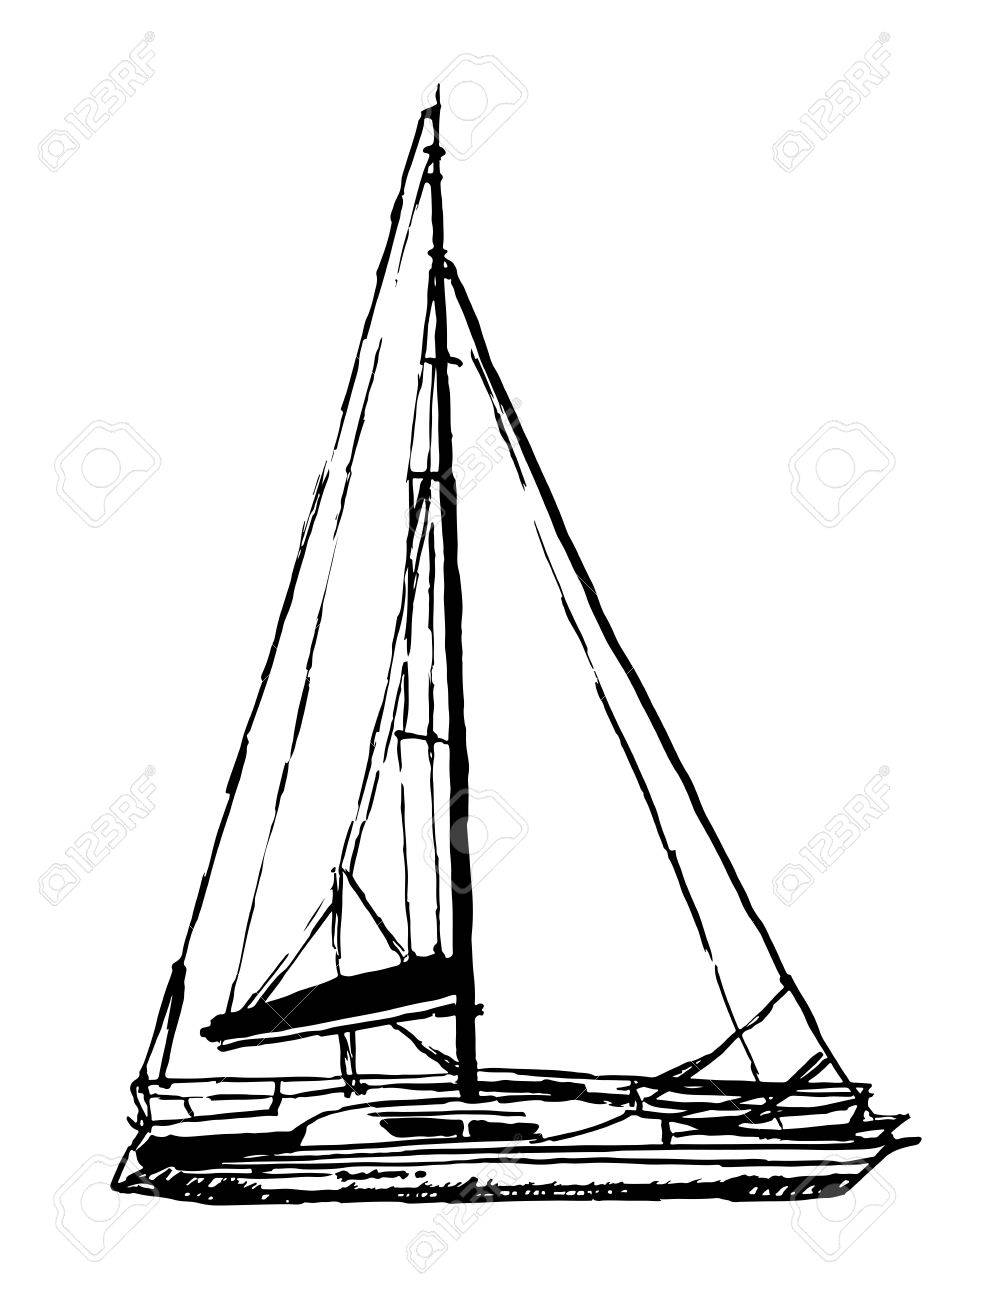 1000x1300 Drawing Light Sailing Yacht Sketch Hand Drawn Graphics Inks Vector